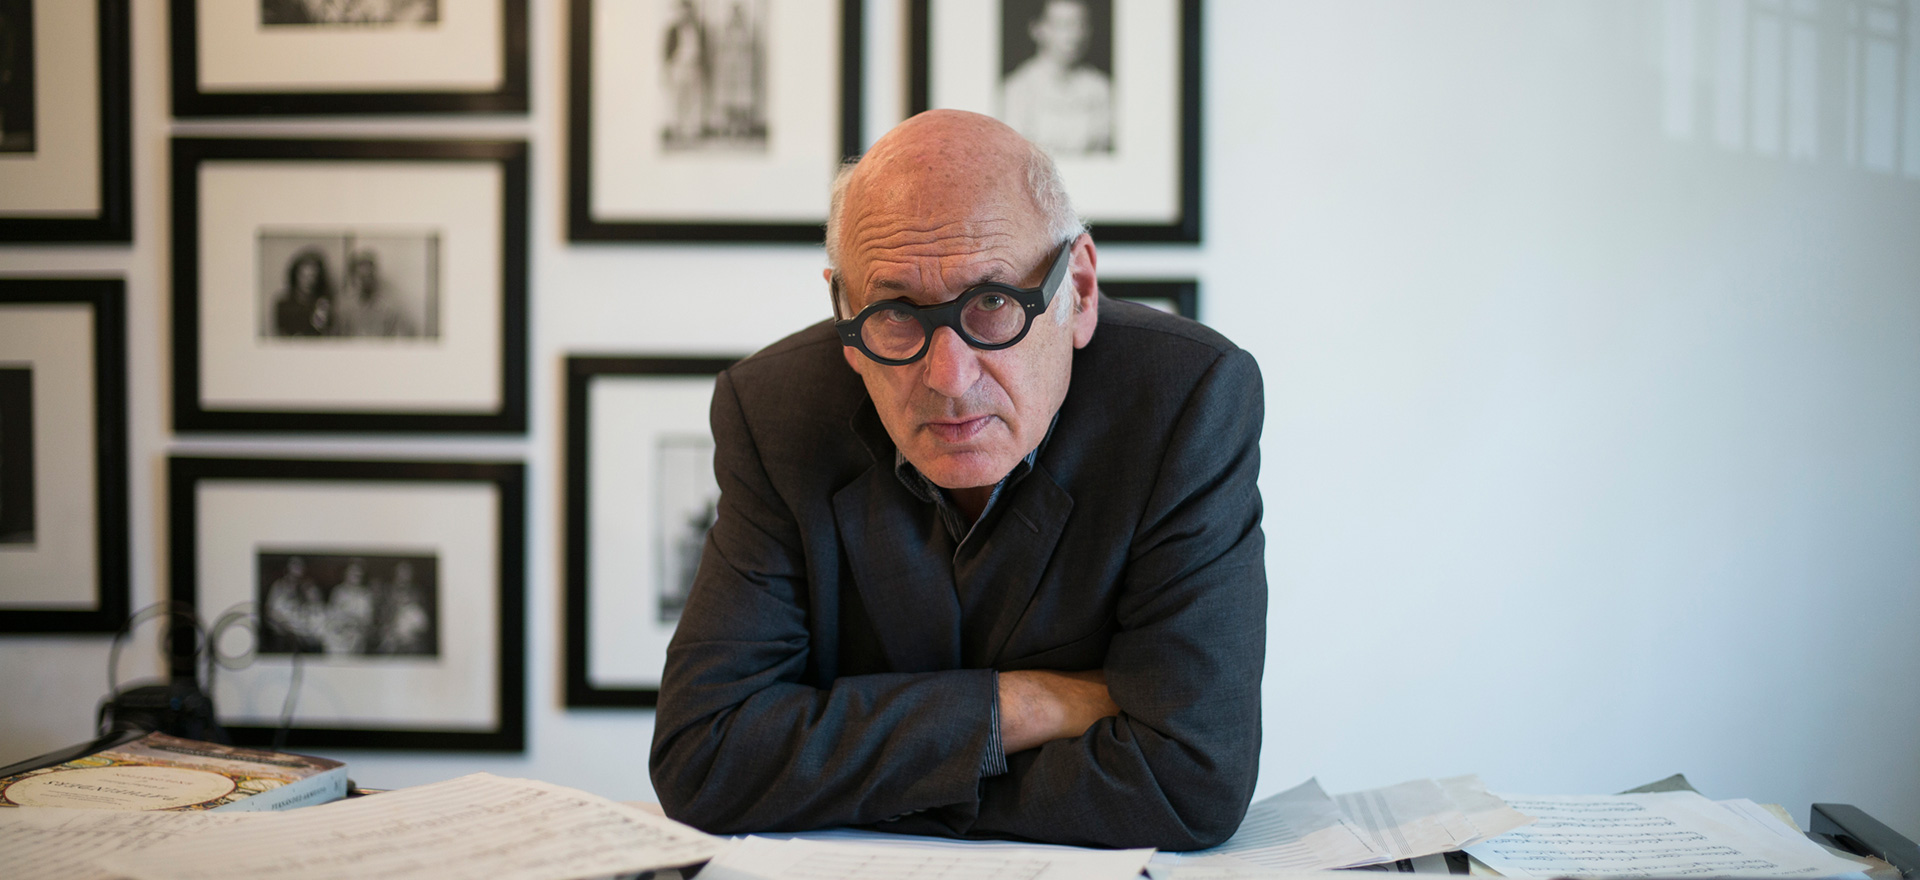 https://www.politeamapratese.com/wp-content/uploads/2020/10/Michael-Nyman-Photo-Fernando-Aceves-16-high_880.jpg